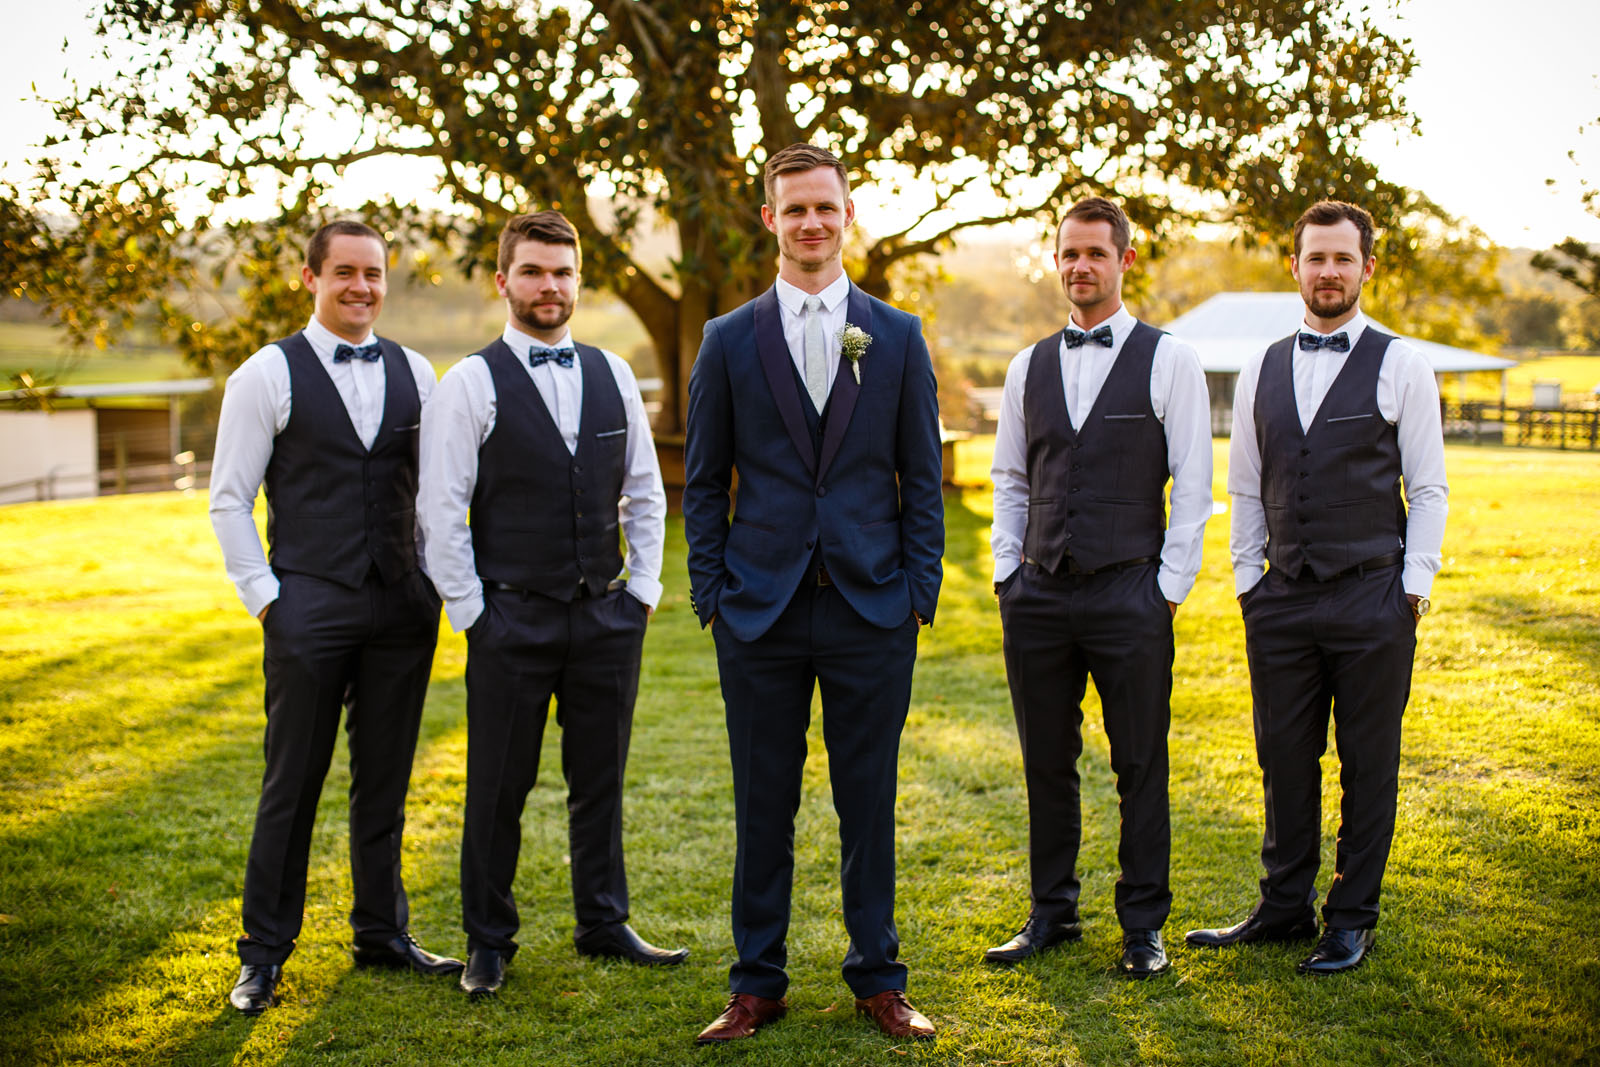 mount_tamborine_wedding_photographer_238